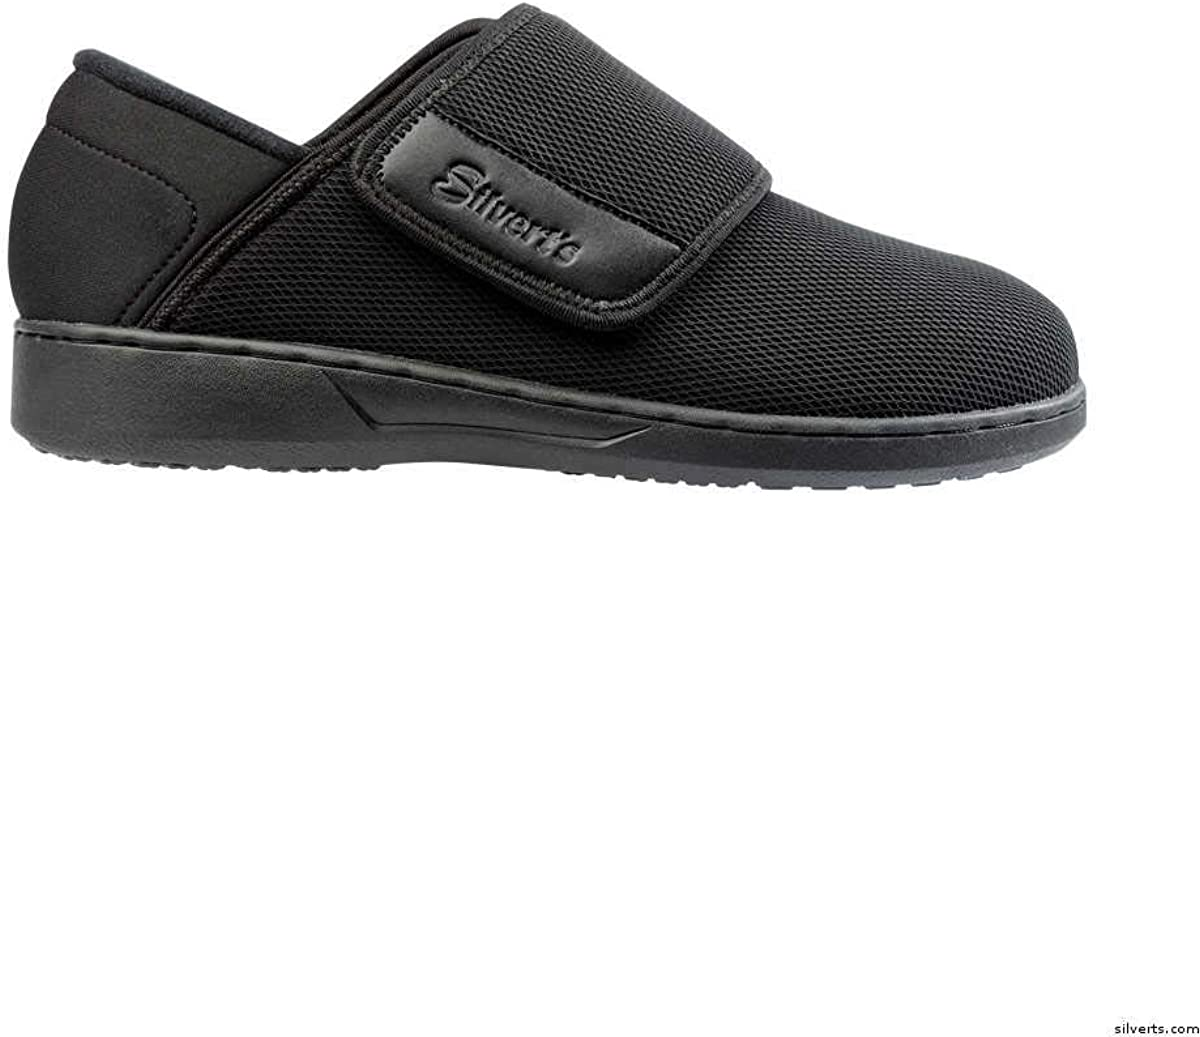 extra wide width shoes for ladies